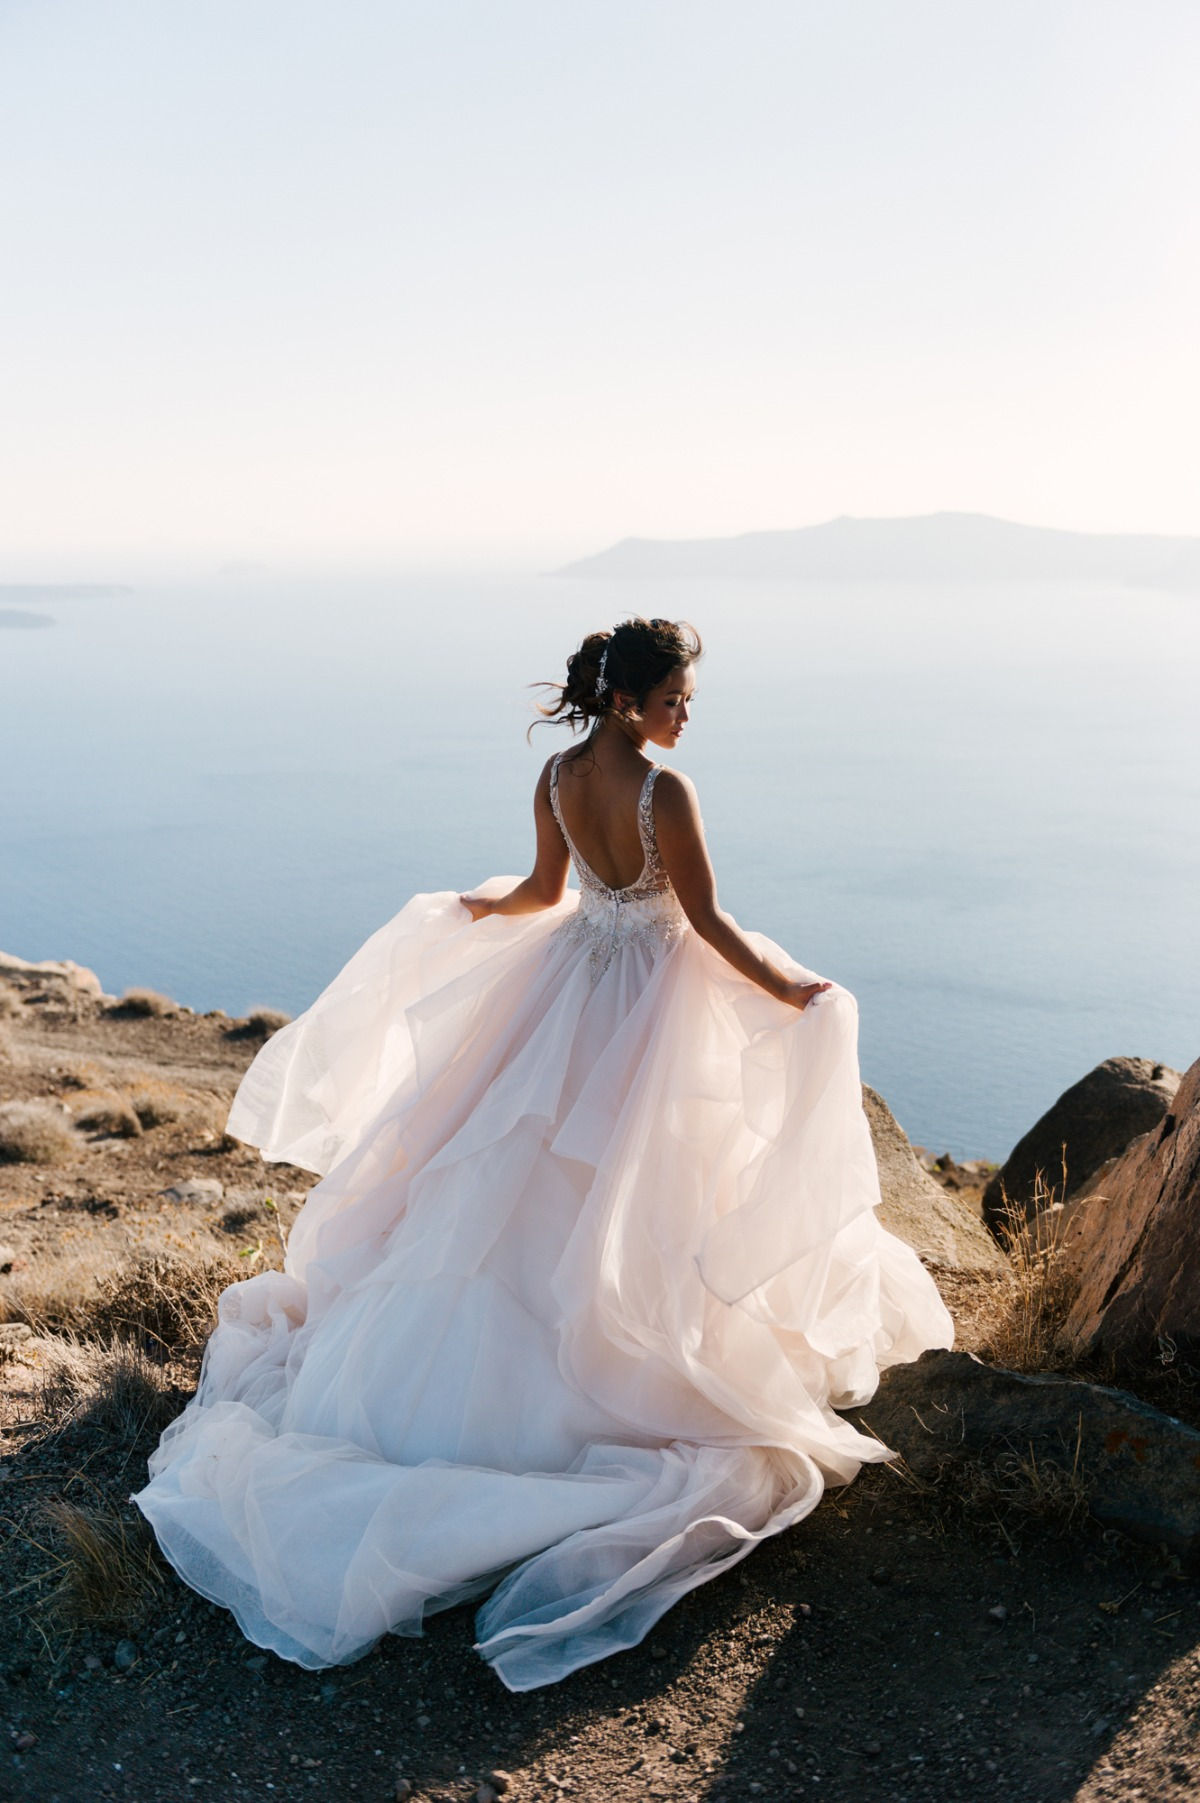 Bridal portrait in Santorini